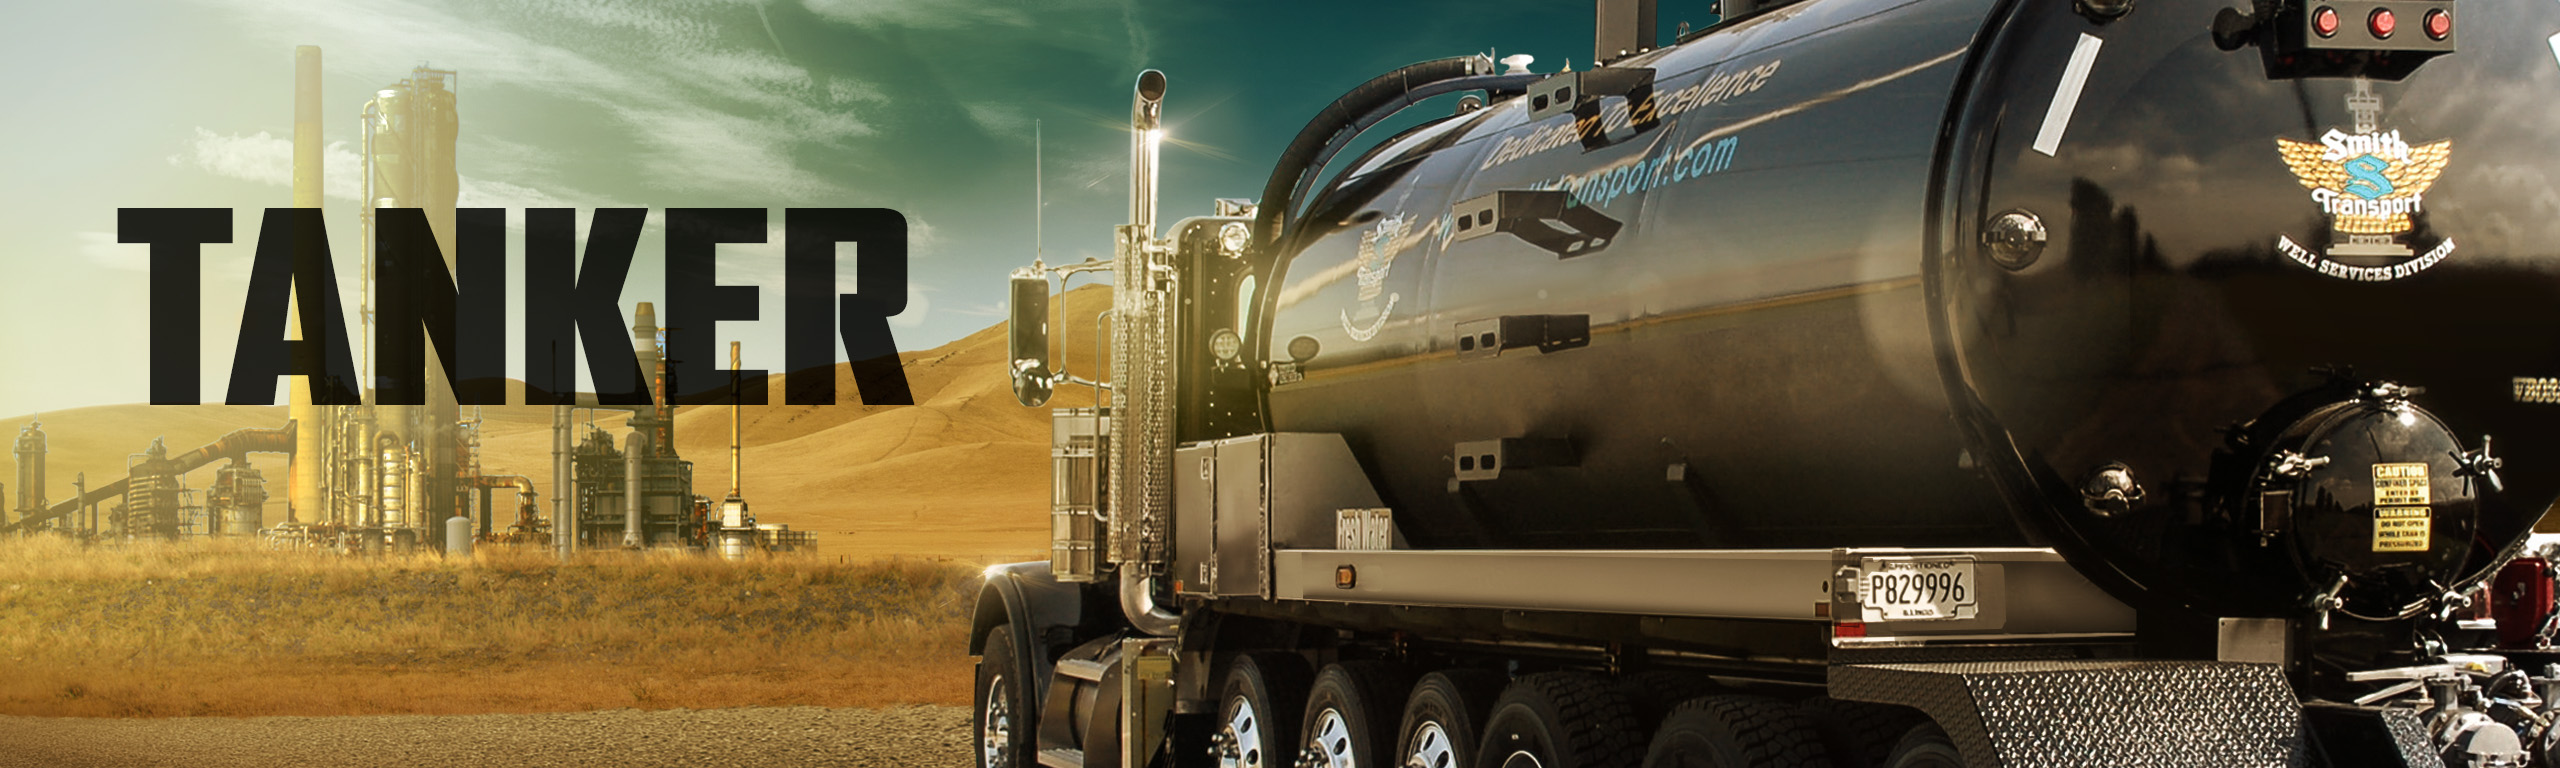 tanker driver jobs no experience